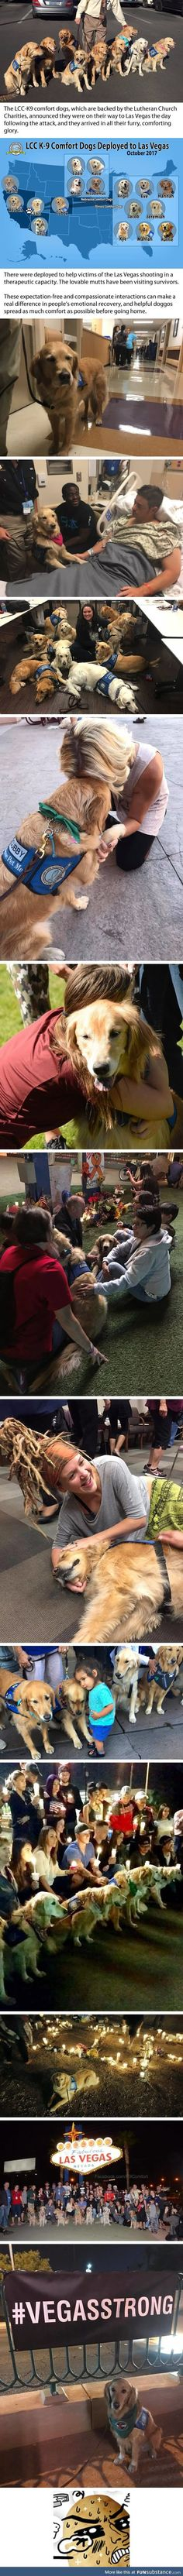 These dogs are helping people deal with the trauma of the Las Vegas shooting